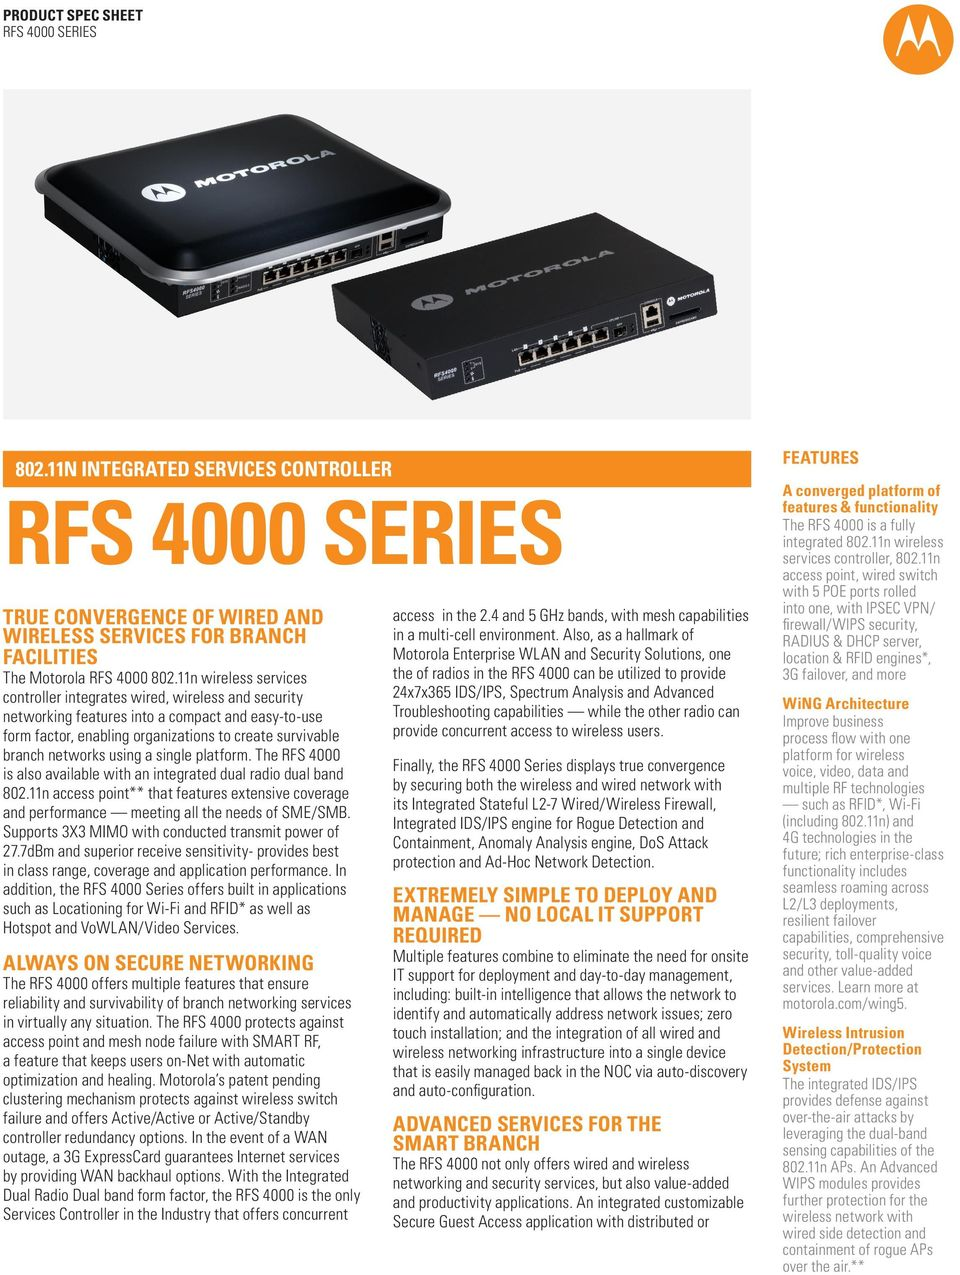 The RFS 4000 is also available with an integrated dual radio dual band access point** that features extensive coverage and performance meeting all the needs of SME/SMB.